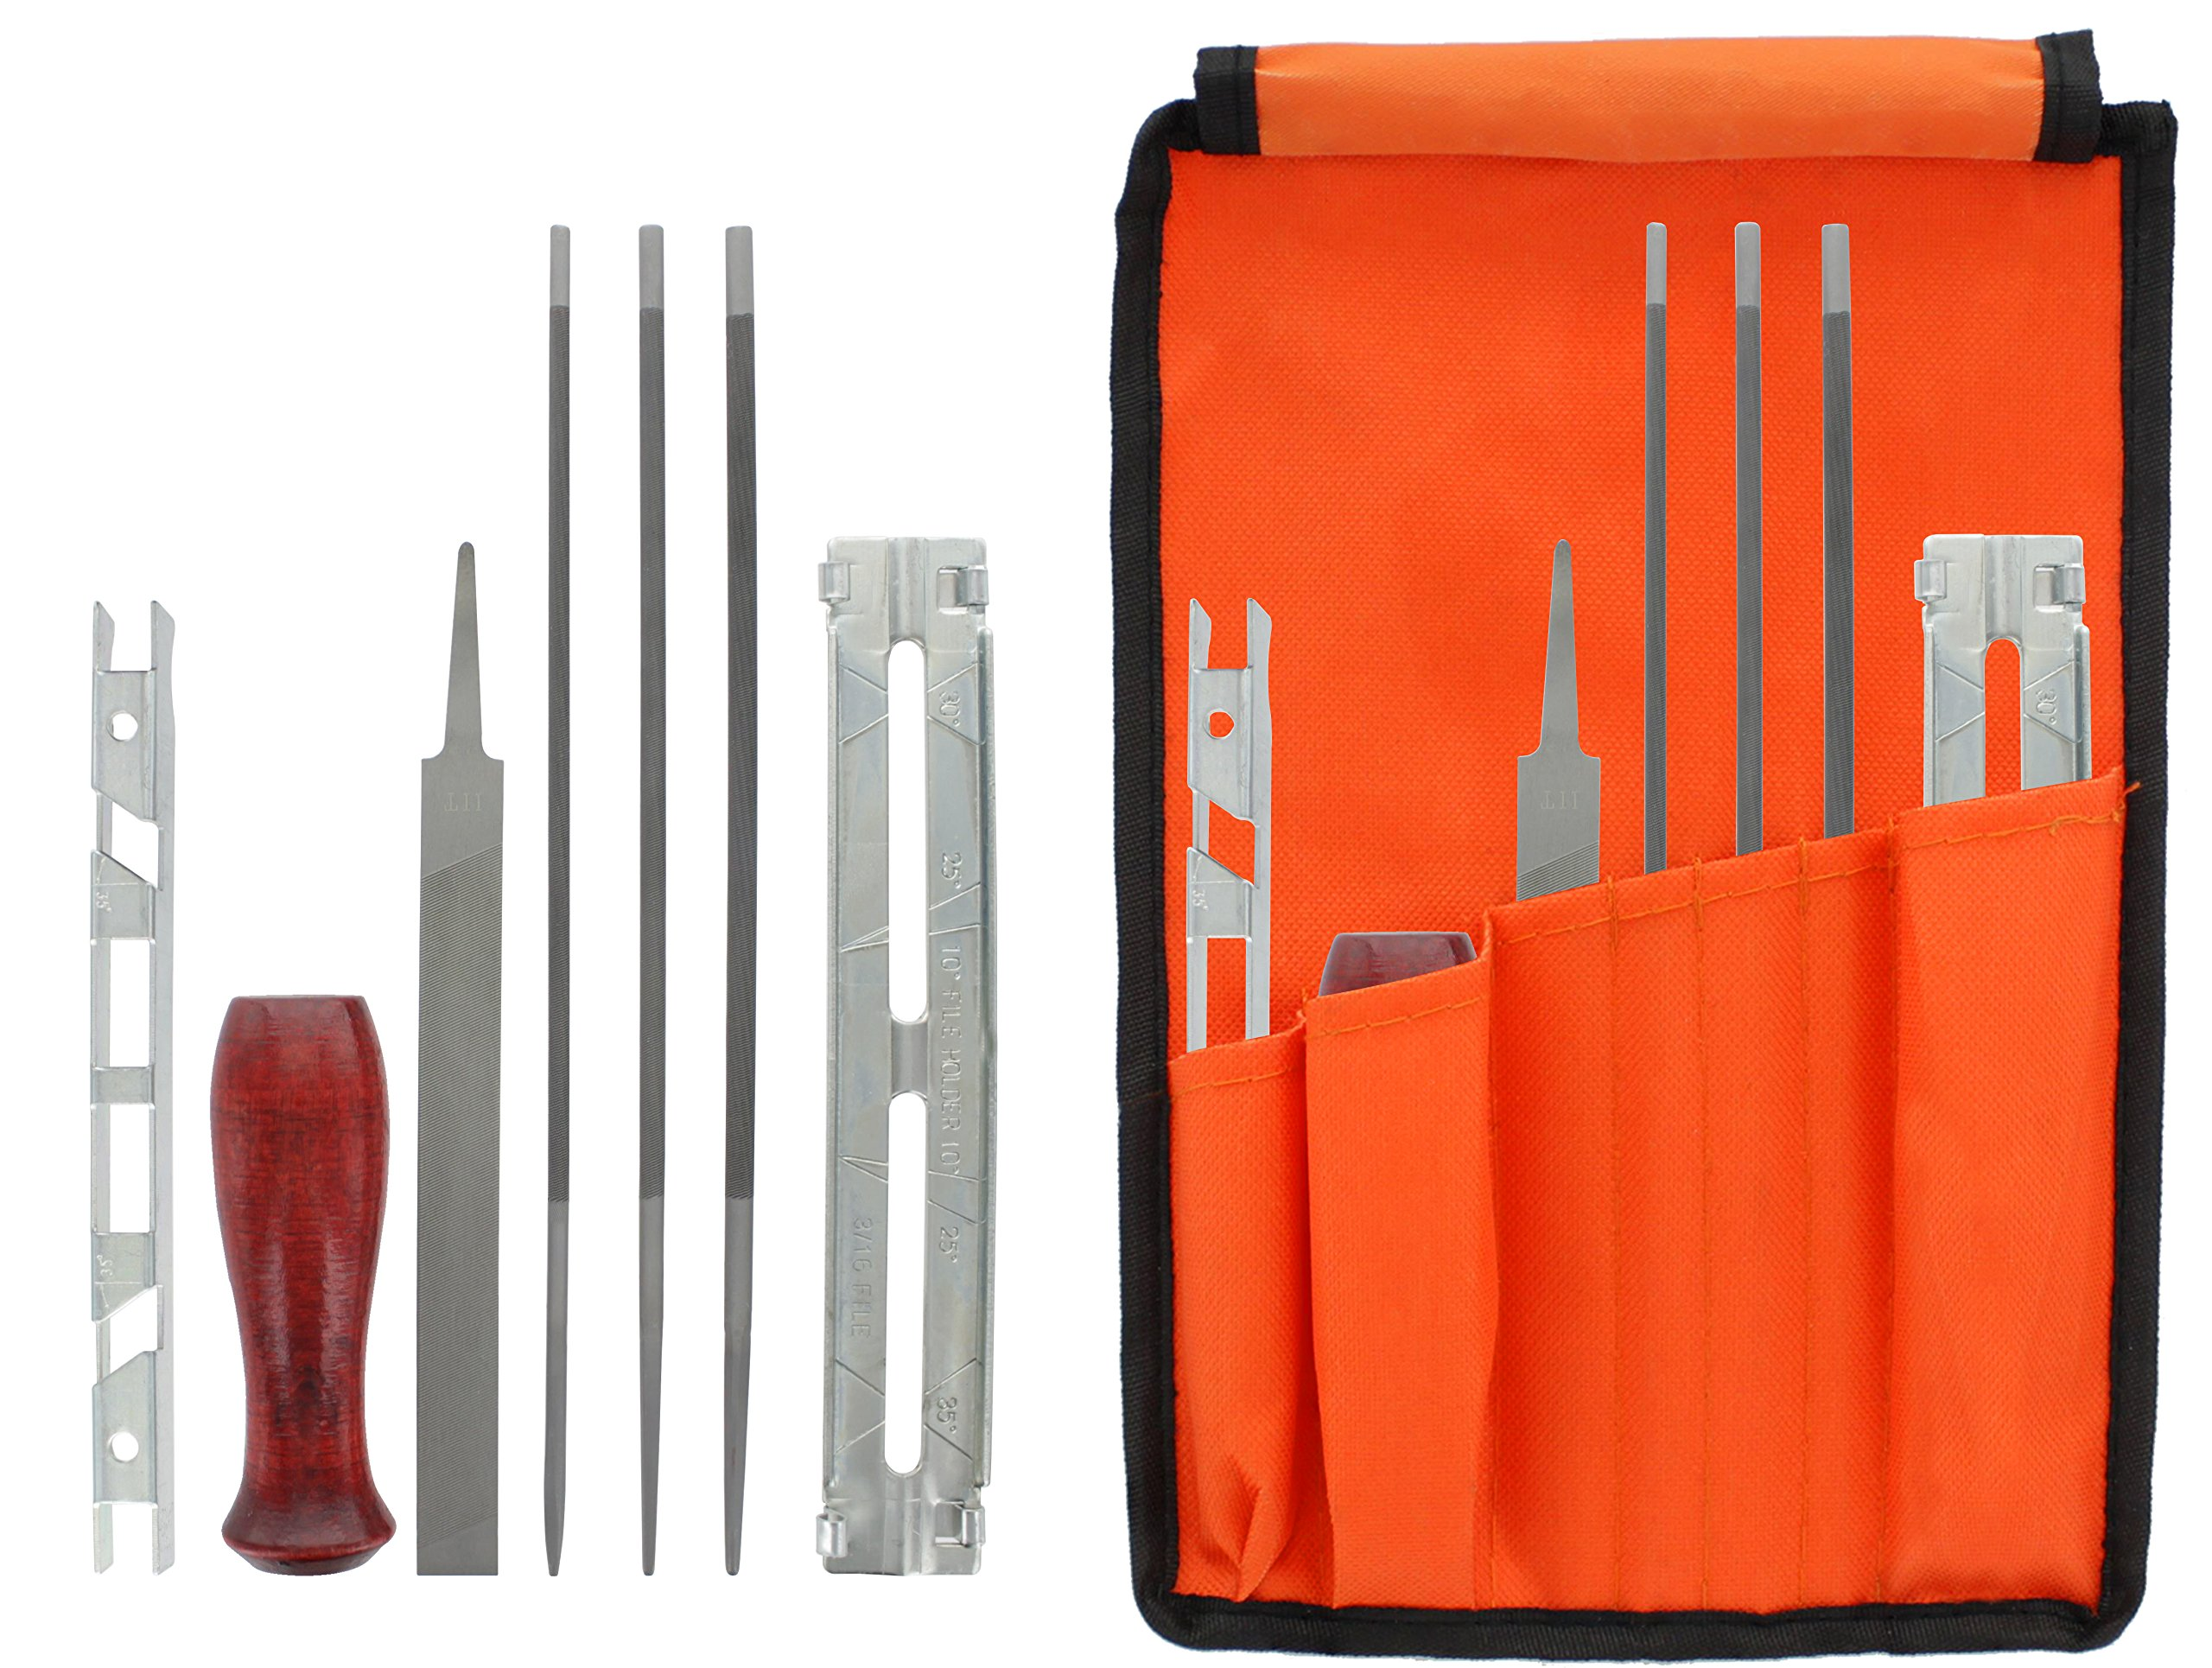 Drixet Chainsaw Sharpening & Filing Kit - Includes: 5/32'', 3/16'' & 7/32 Inch Round Files, Flat File, Depth Gauge, Filing Guide, Handle, Tool Pouch, Combo 8-Piece Pack with Instructions by Drixet